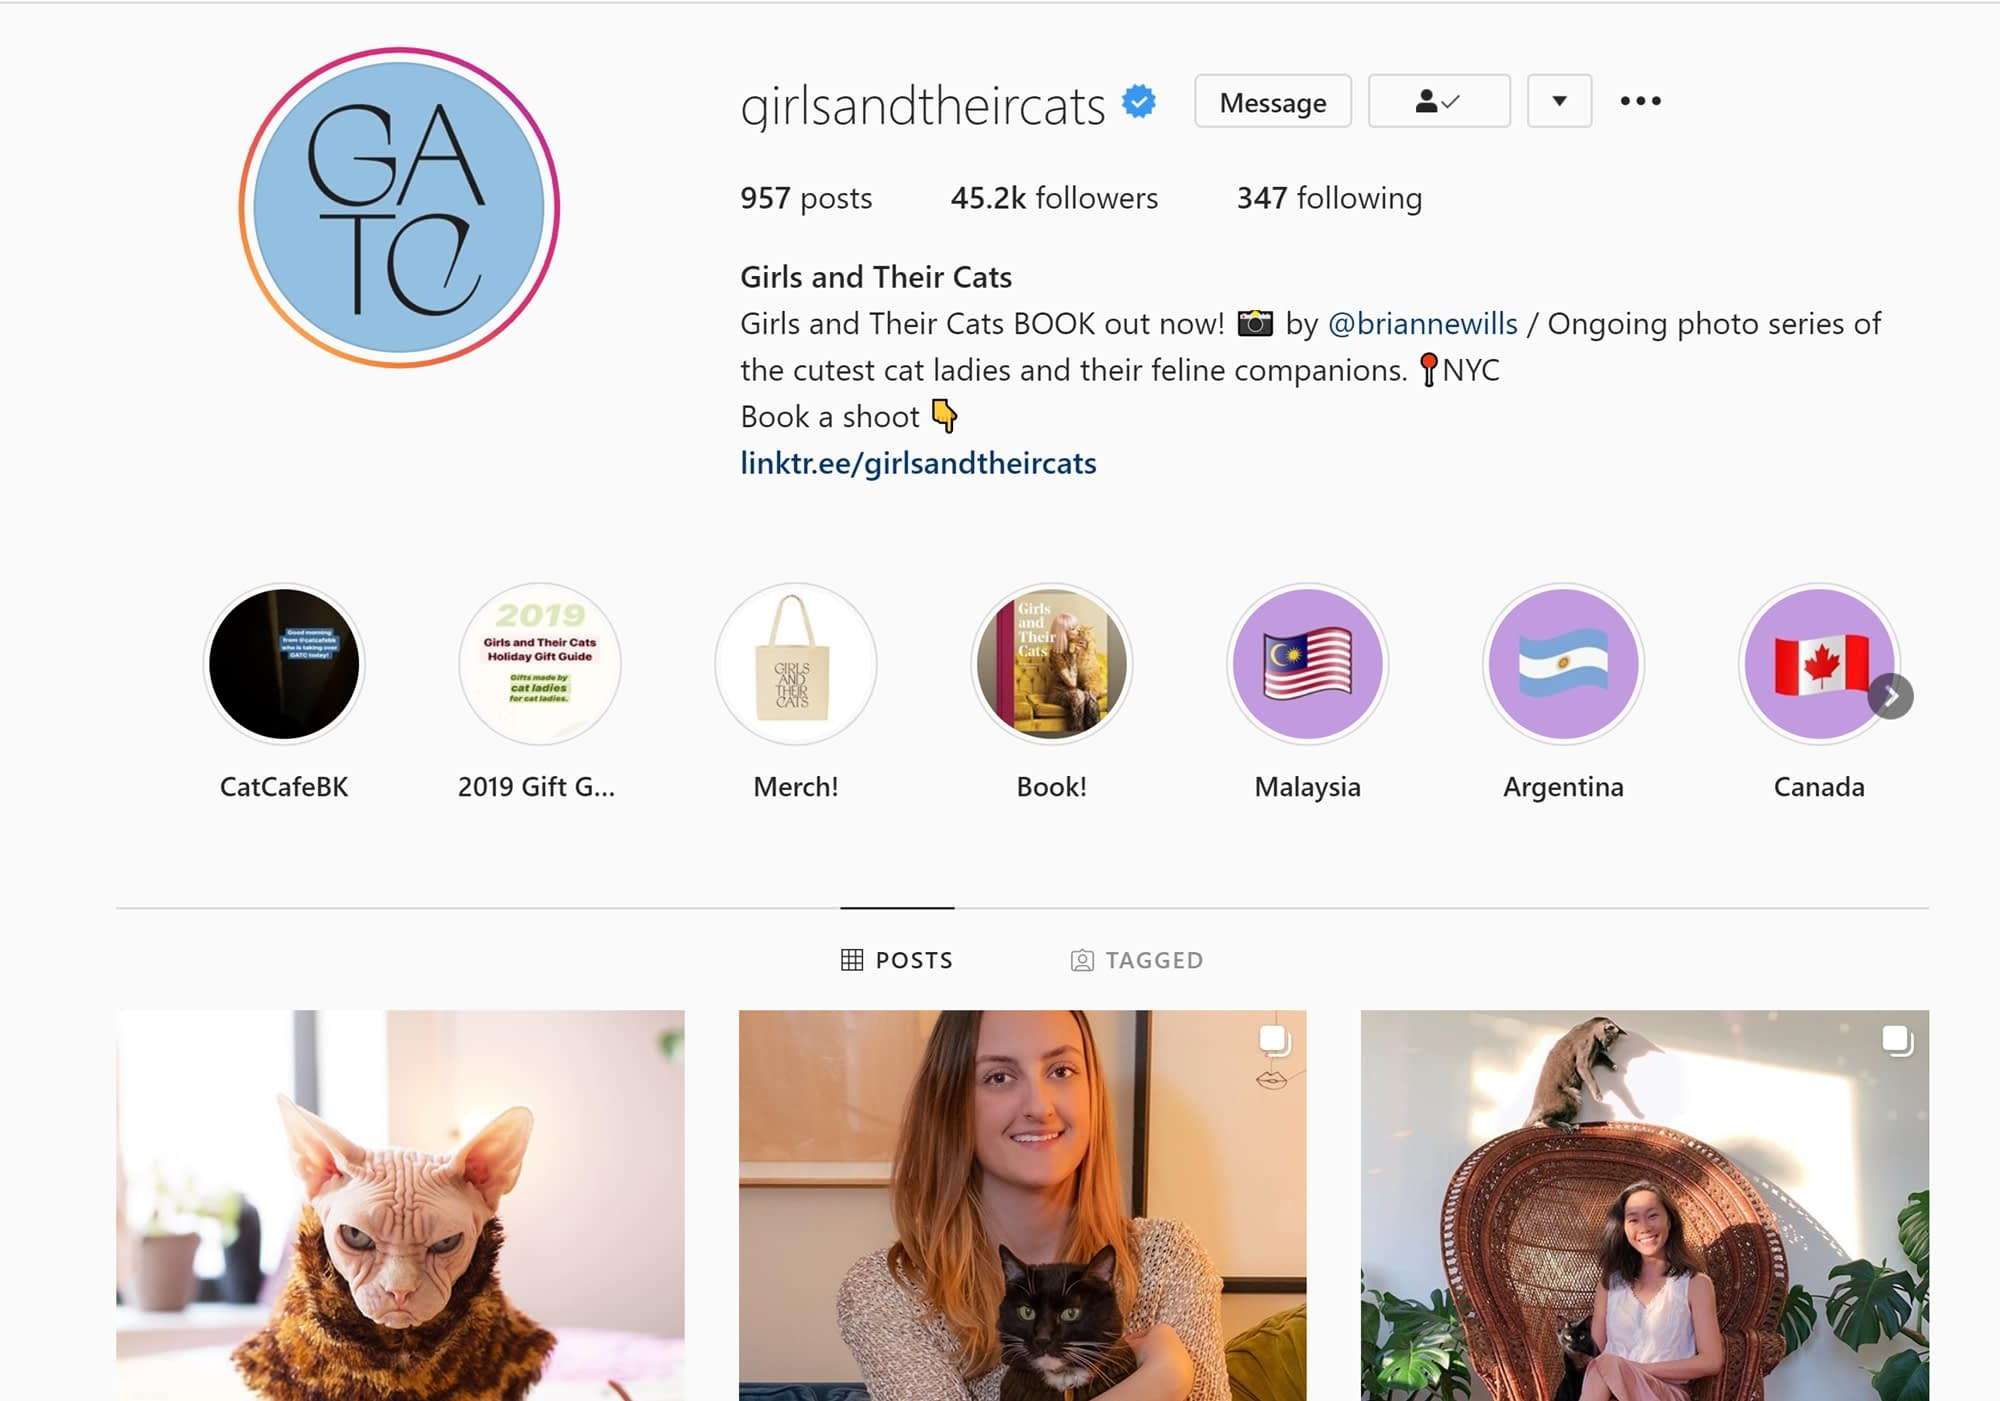 How to get verified on Instagram: Girls and Their Cats